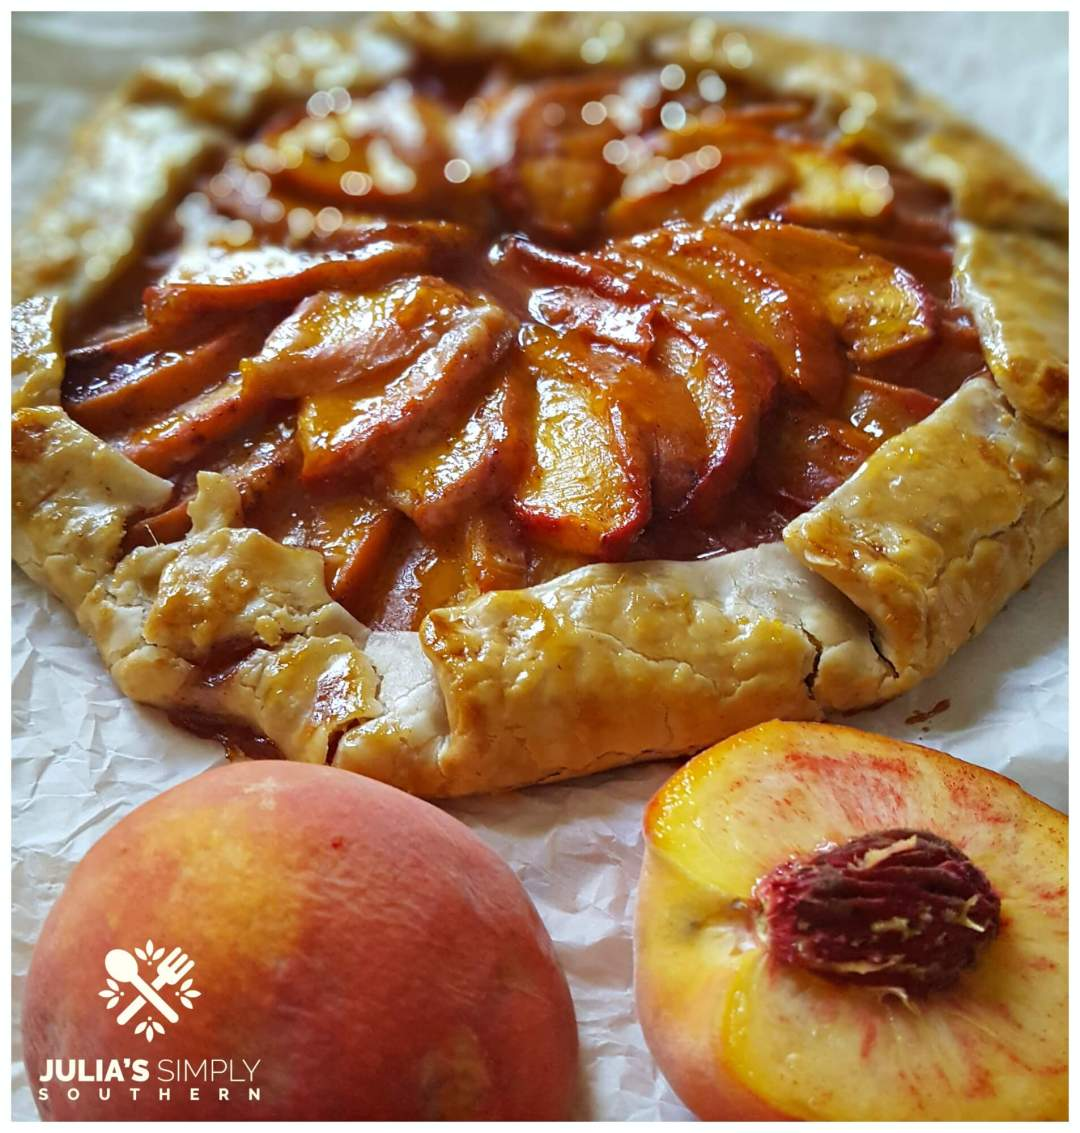 tree ripened peach dessert using pie crust